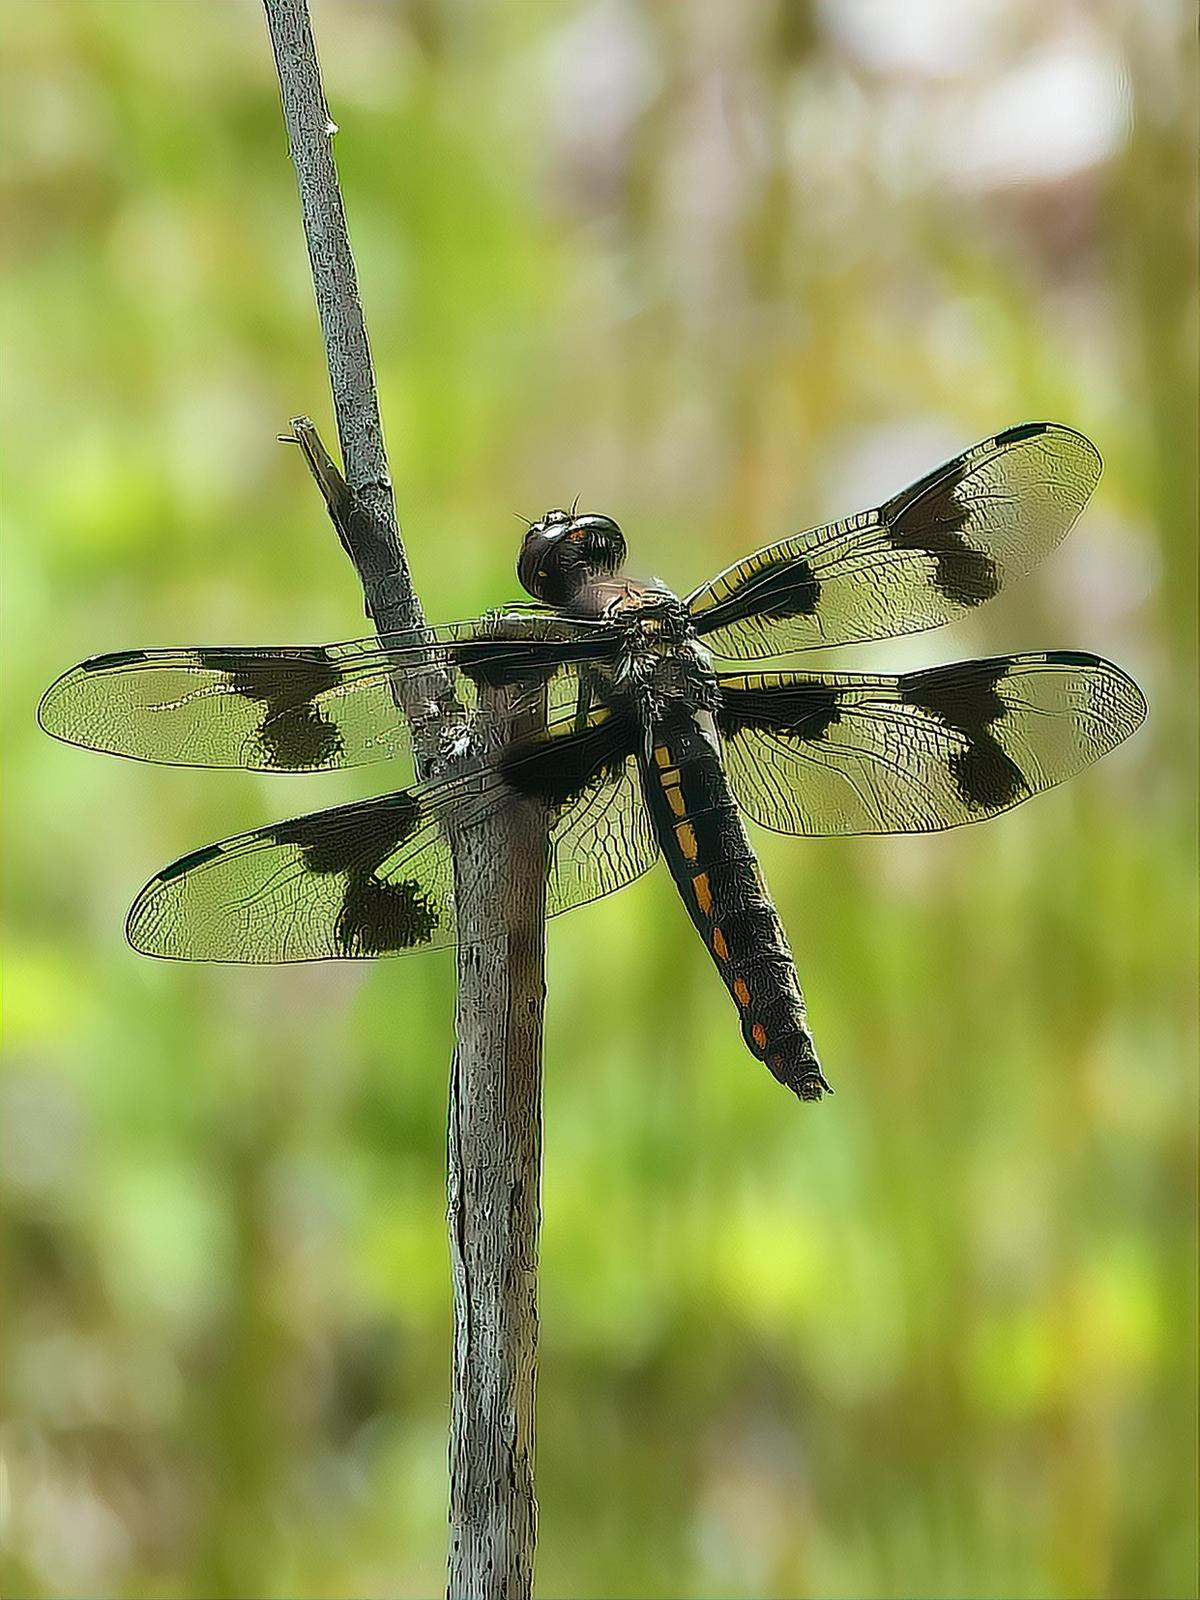 Eight-spotted Skimmer Photo by Dan Tallman